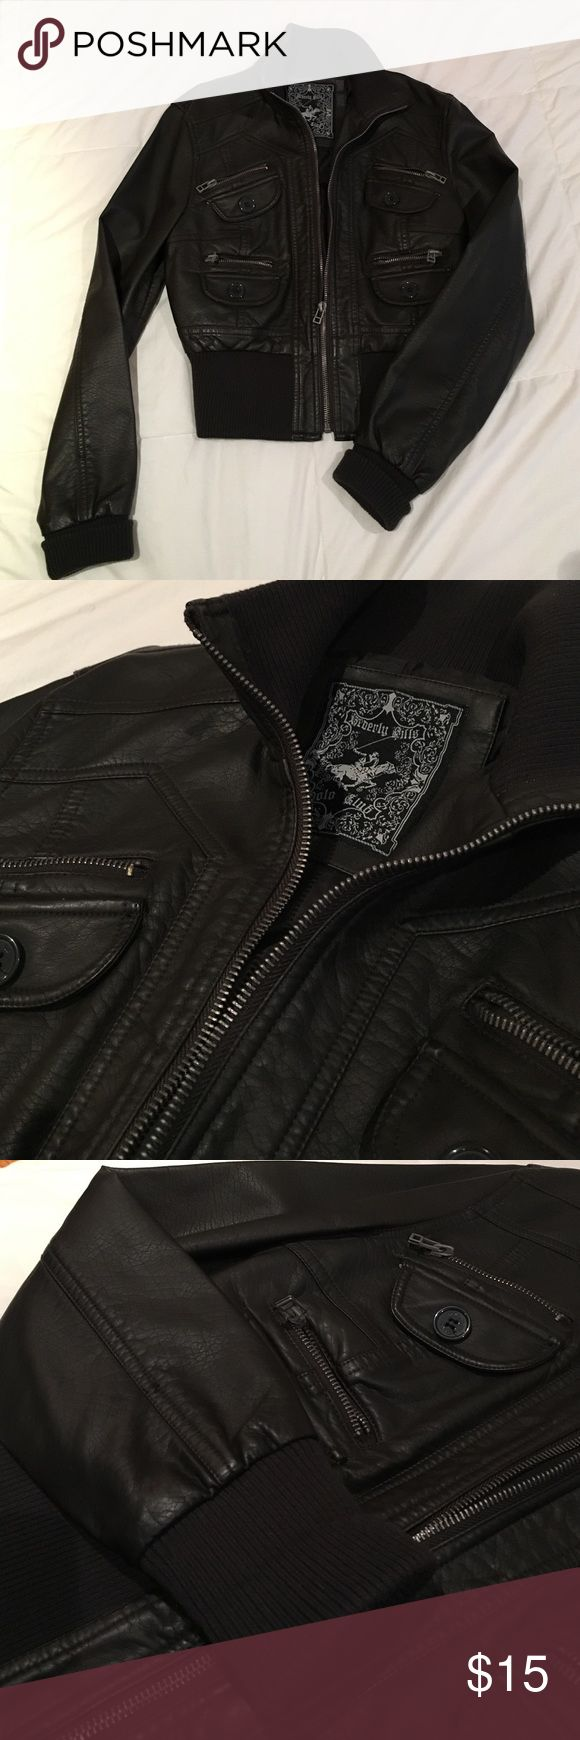 Beverly Hills Polo Club pleather jacket Dark brown short pleather jacket. Cute and stylish. In new condition. Jackets & Coats